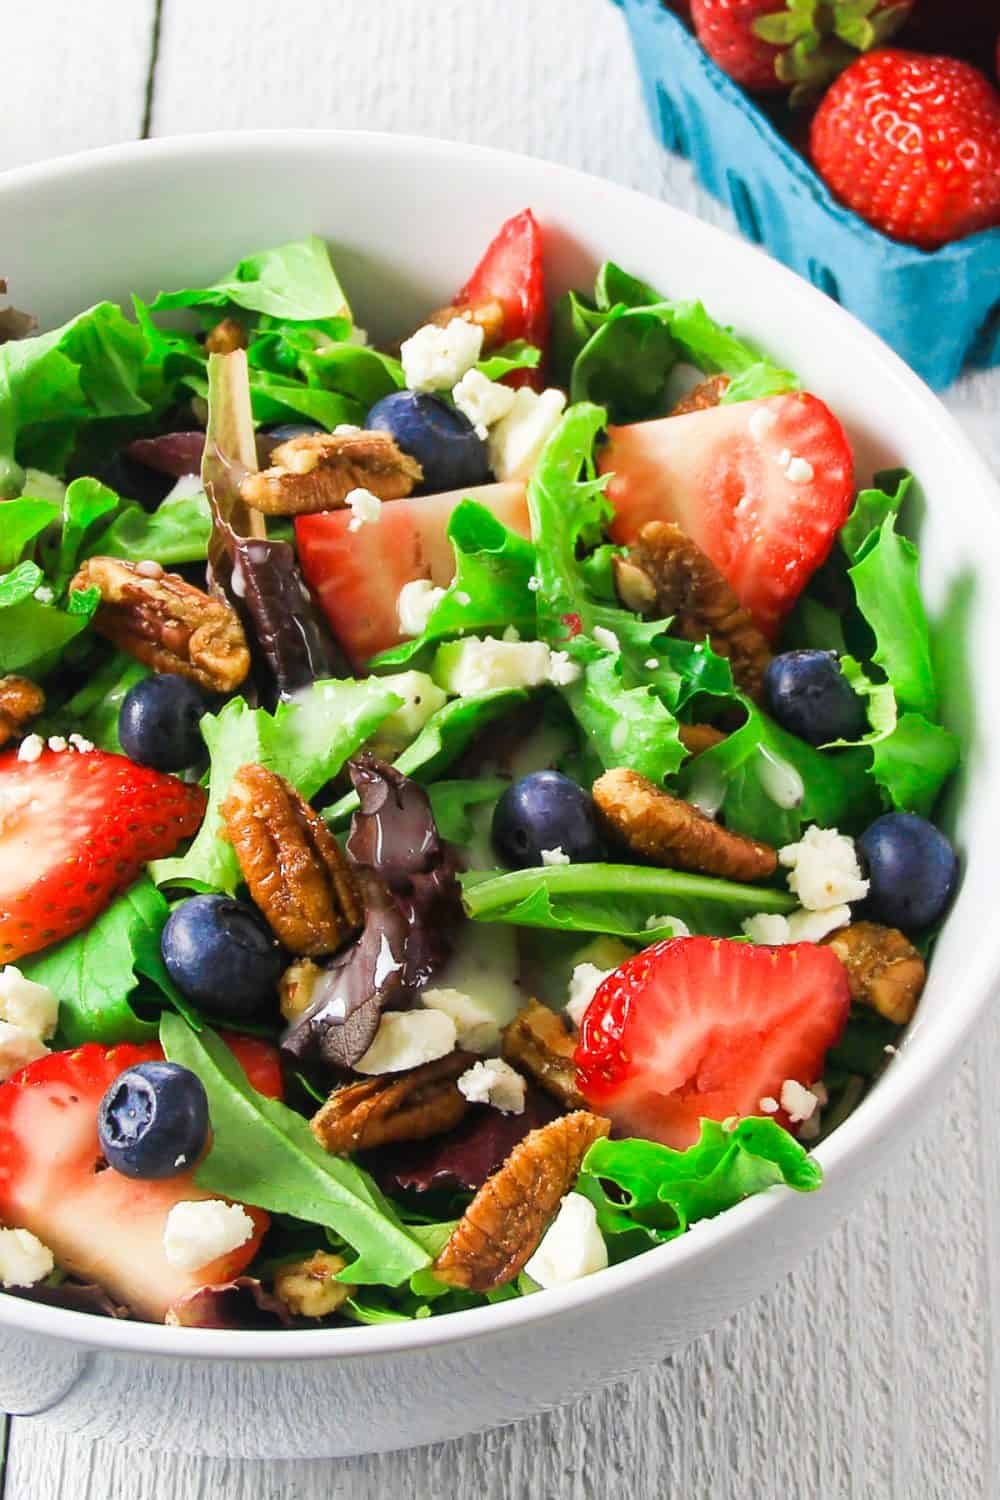 Spinach Strawberry Feta Salad is a wonderful bright salad that gives you tons of protein without feeling heavy. Make this as a full meal or a perfect side to your favorite grilled chicken recipe.